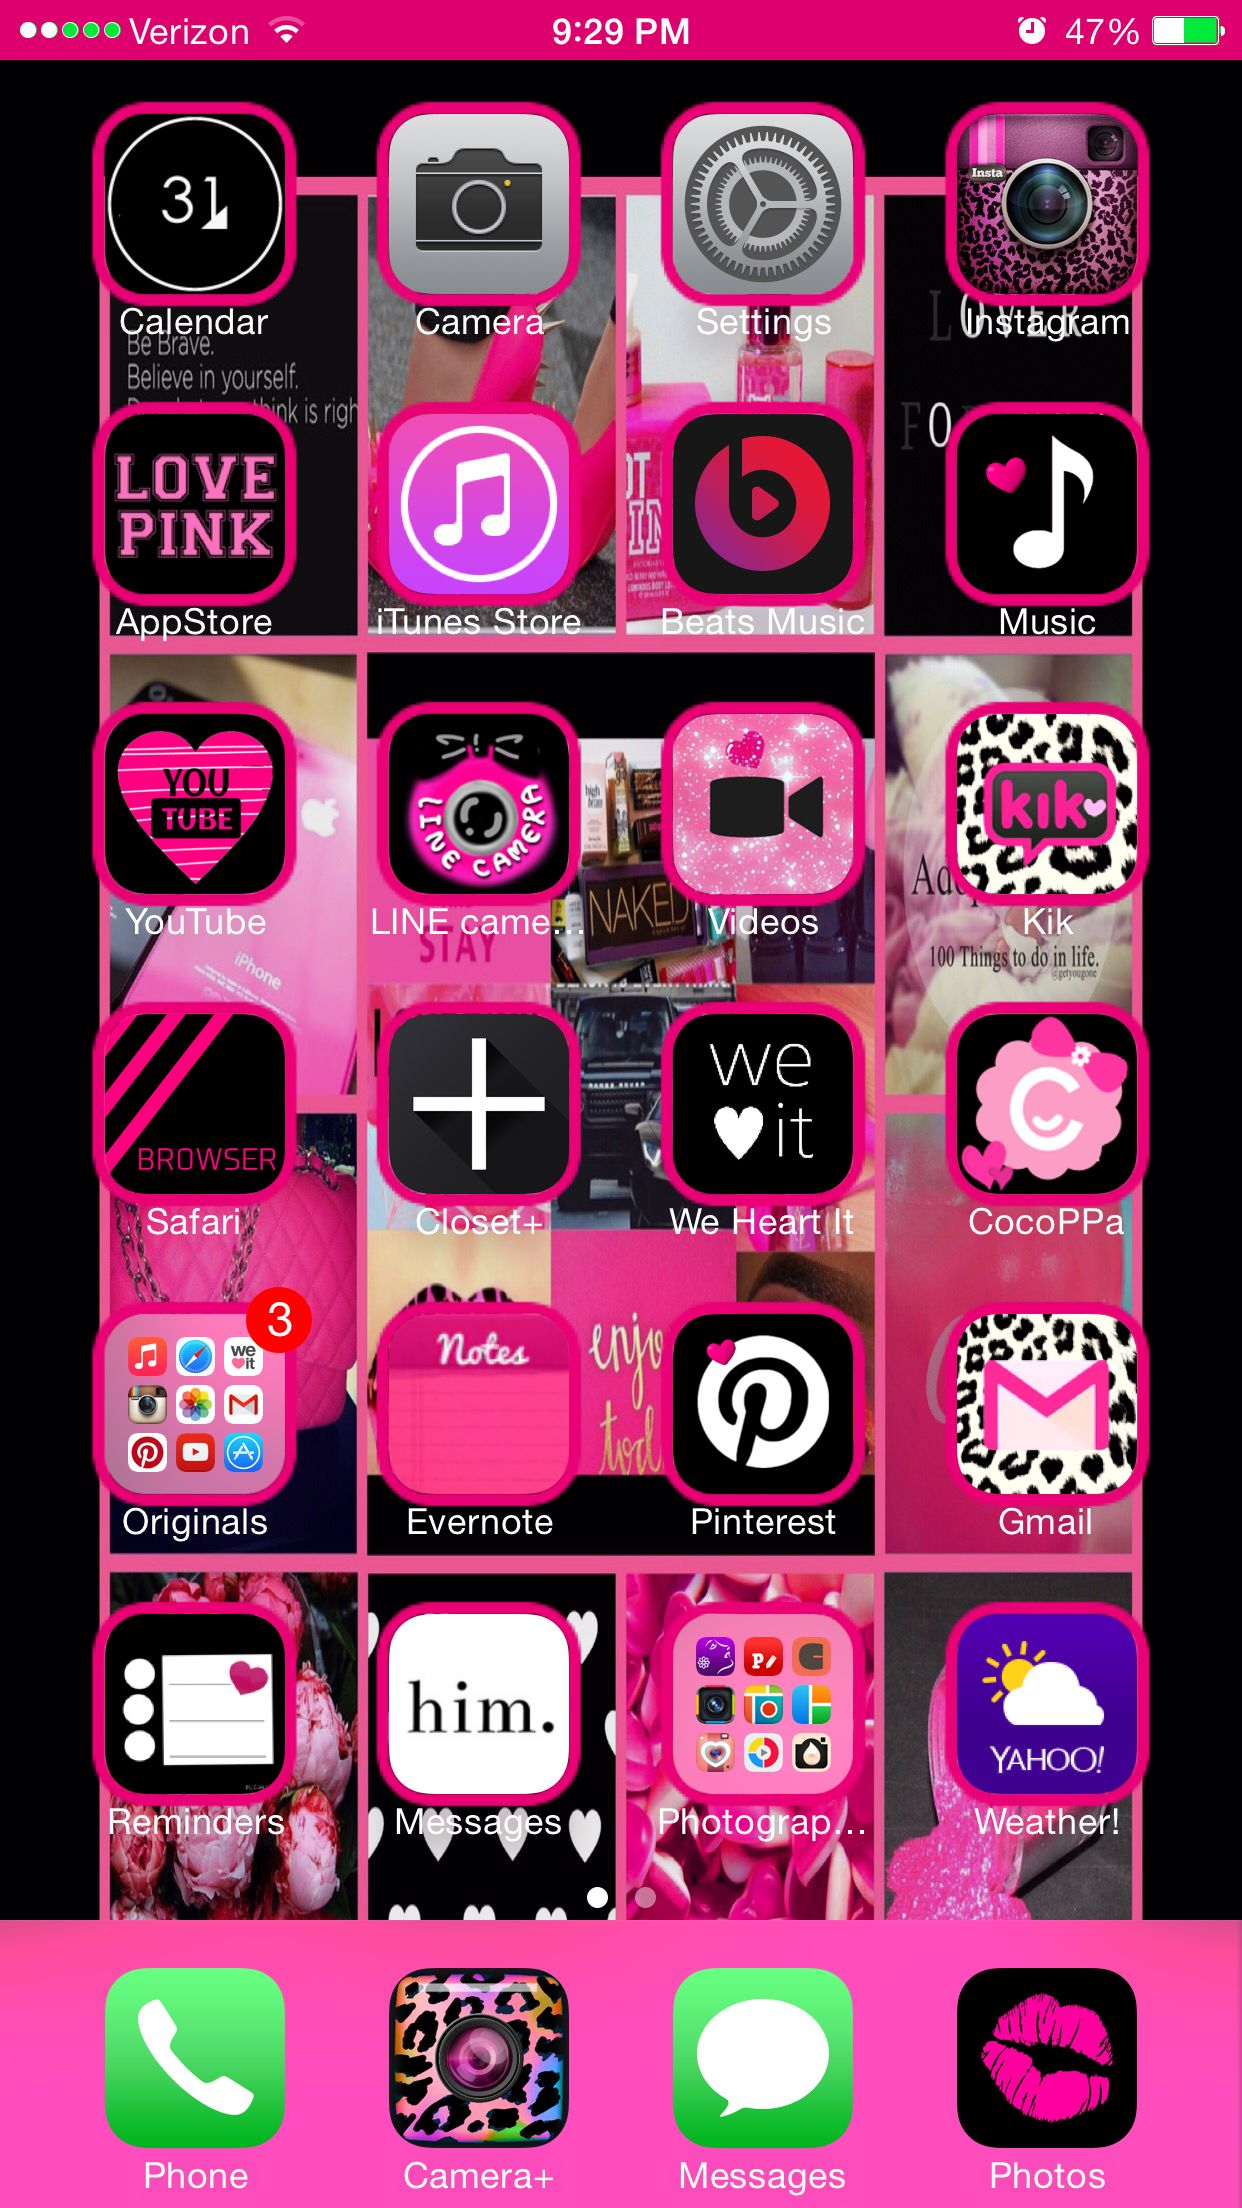 Gmail themes for mobile - Custom Home Screen Using Cocoppa Ios8 Iphone6 I Also Used Pimp Themes For